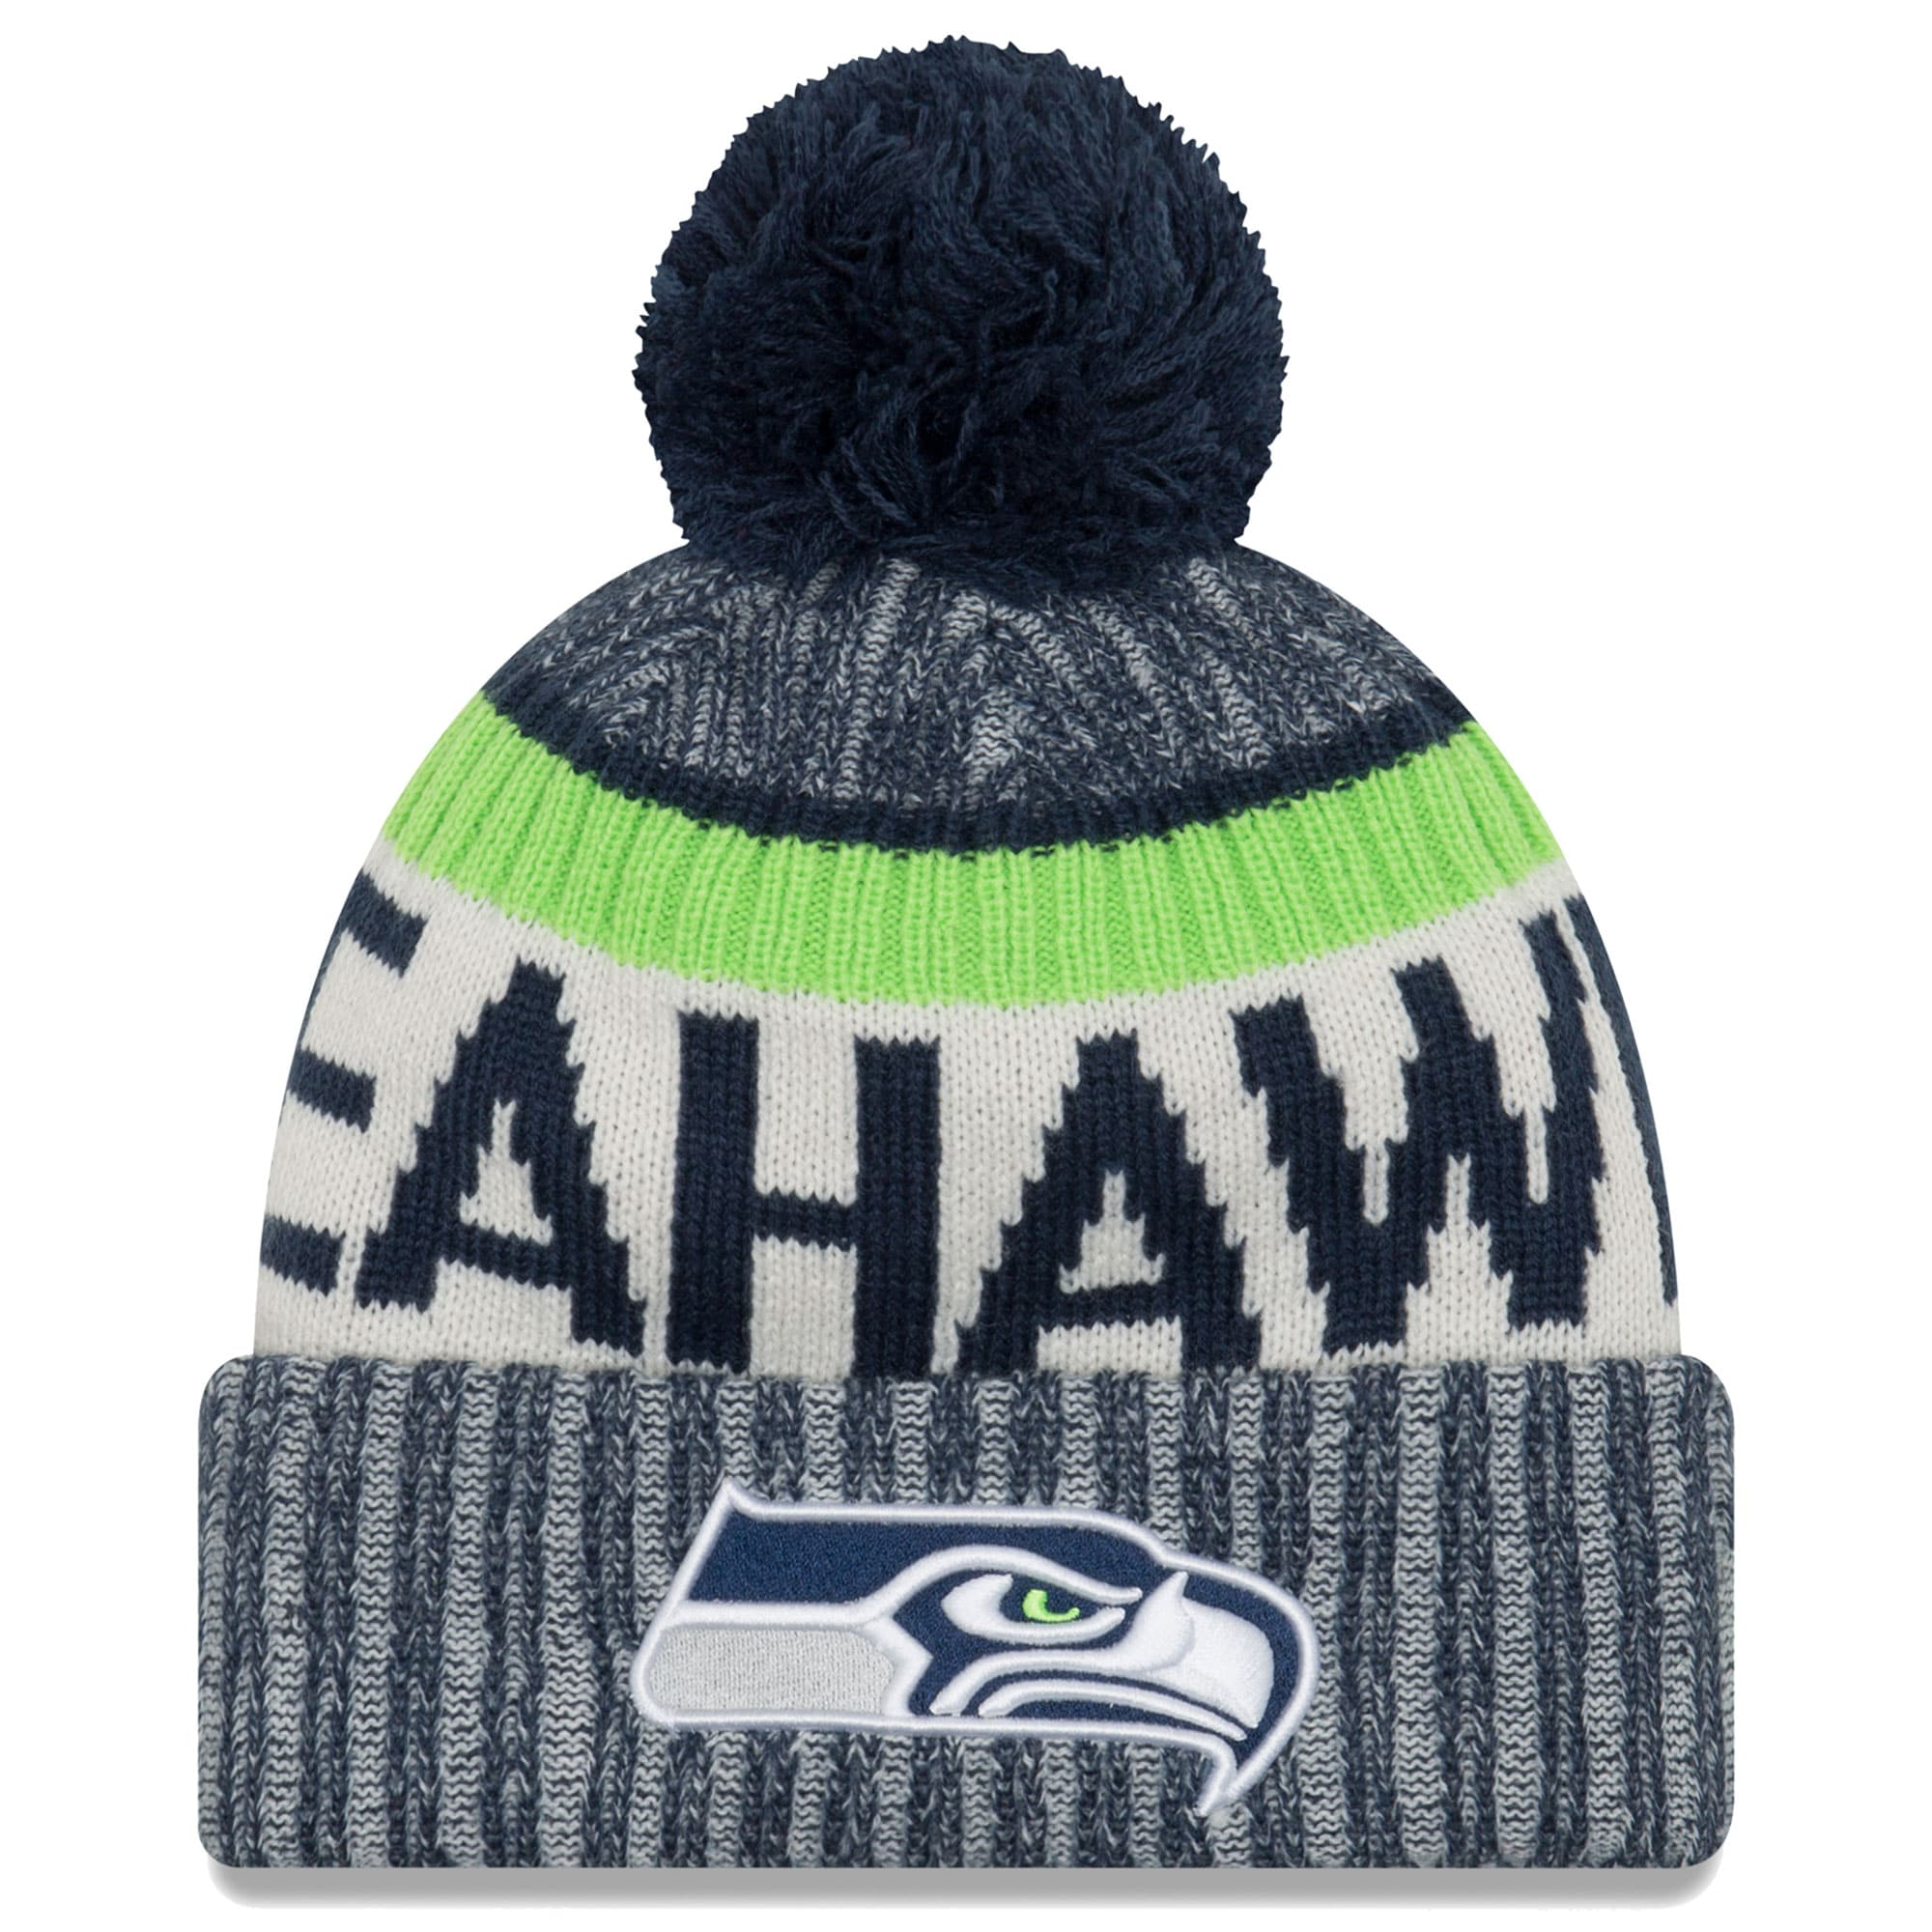 Seattle Seahawks New Era 2017 Sideline Official Sport Knit Hat - College Navy